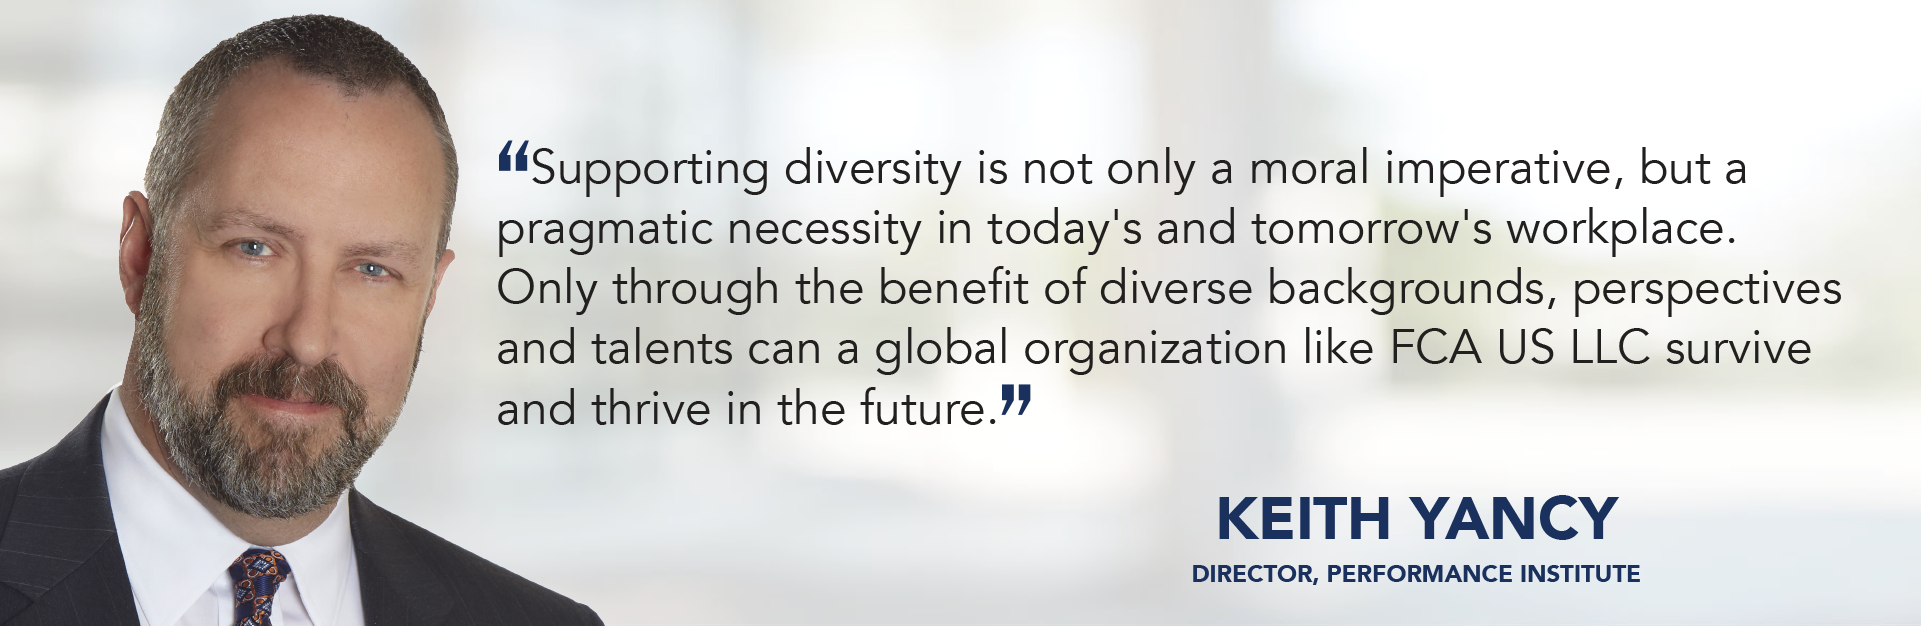 Supporting diversity is not only a moral imperative, but a pragmatic necessity in today's and tomorrow's workplace. Only through the benefit of diverse backgrounds, perspectives and talents can a global organization like FCA survive and thrive in the future. - Keith Yancy